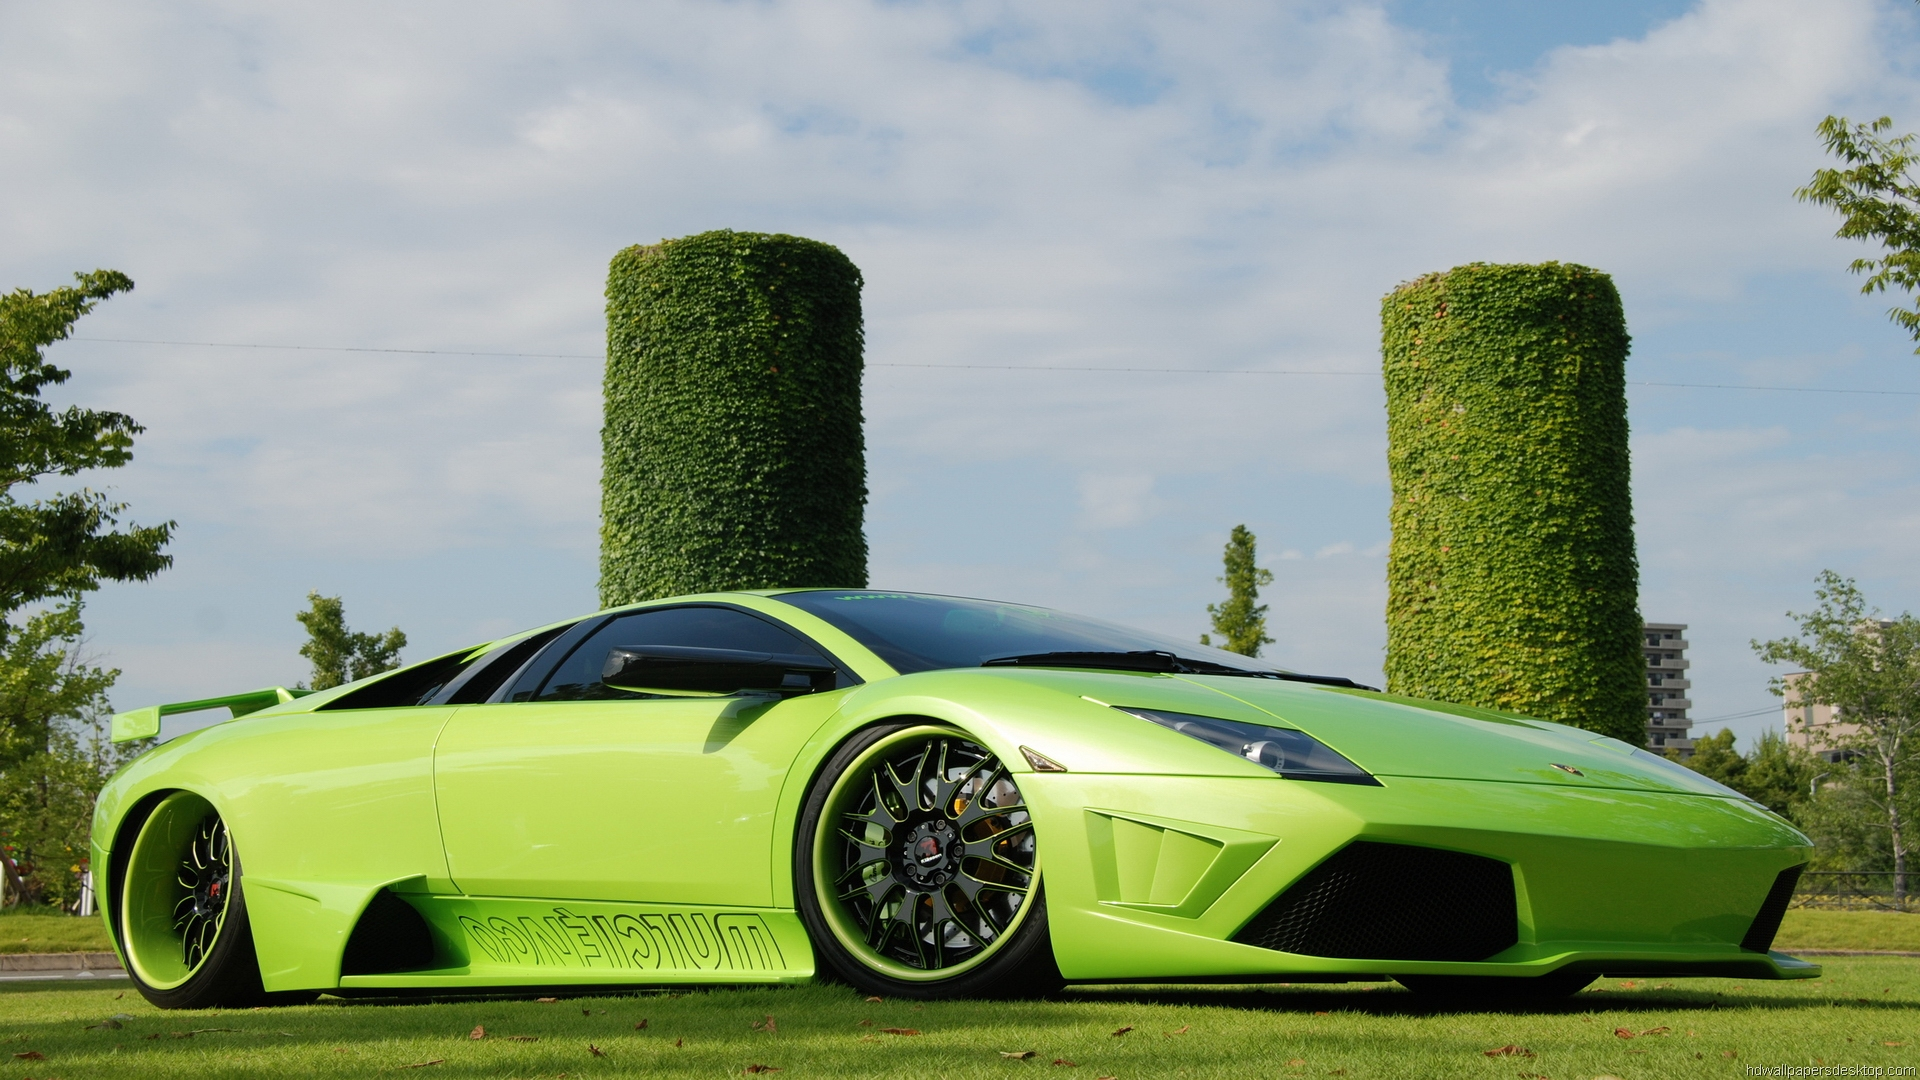 Lamborghini HD Wallpaper Full HD 1080p Cars Background Wallpapers HD 1920x1080